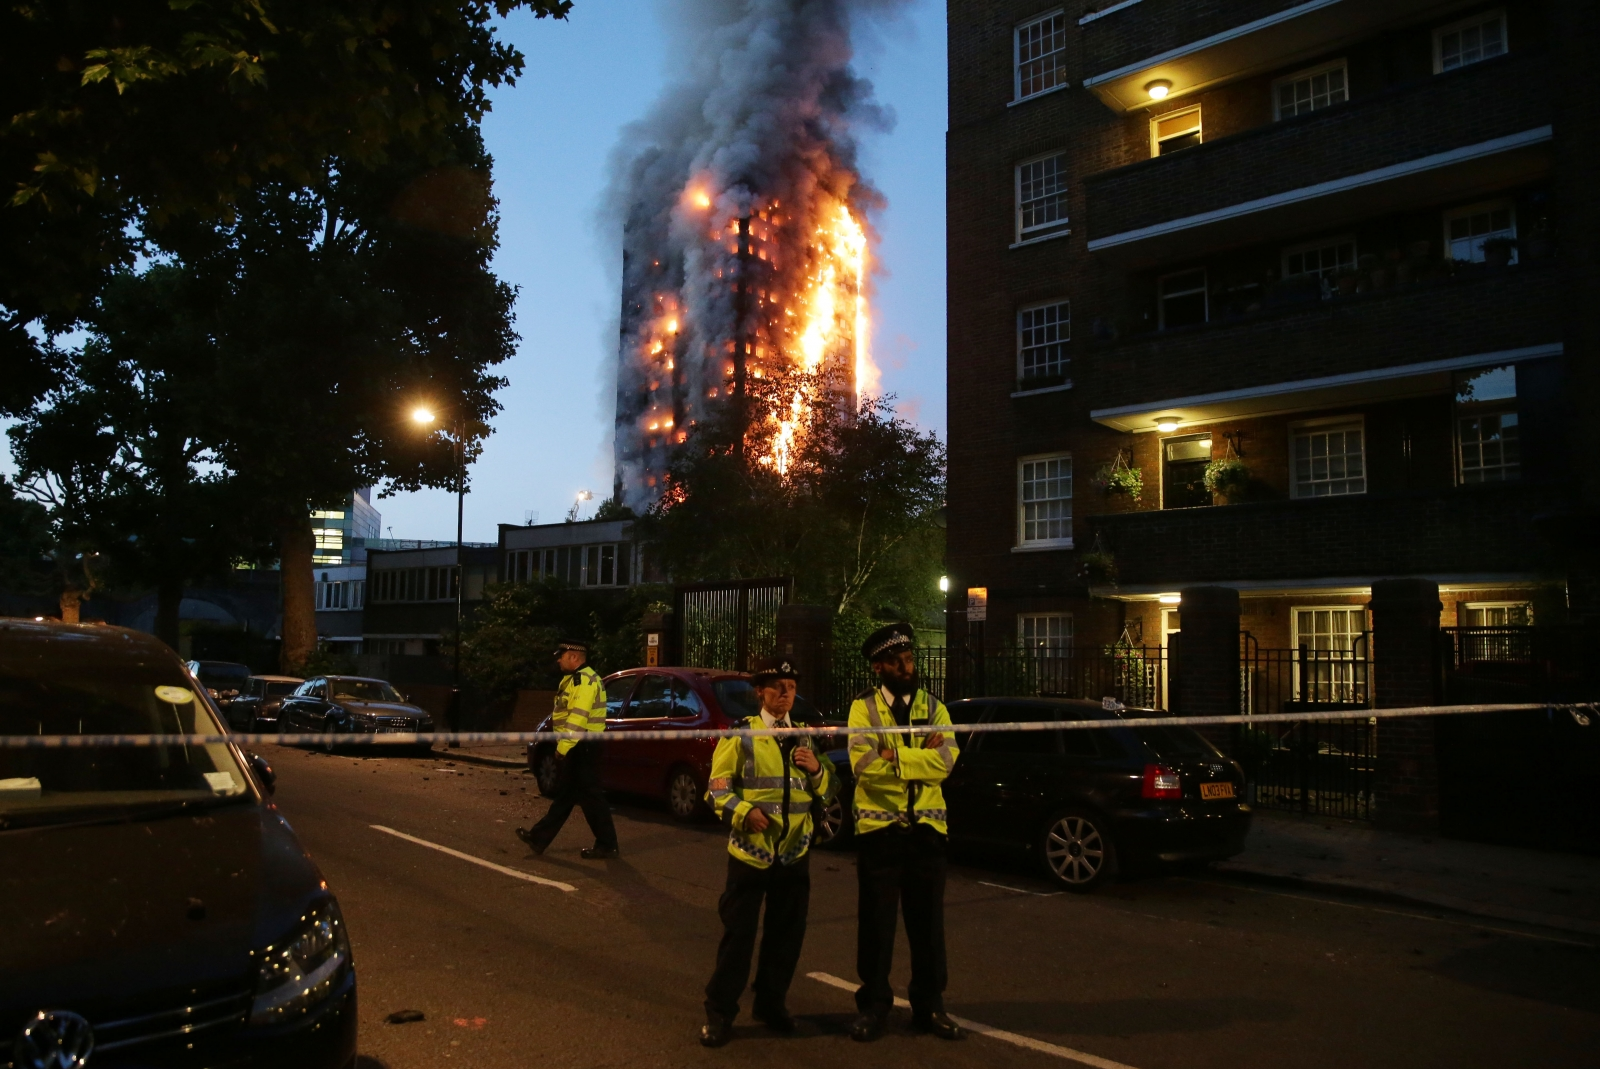 Grenfell Tower Fire - Image Copyright IbTimes.Co.Uk